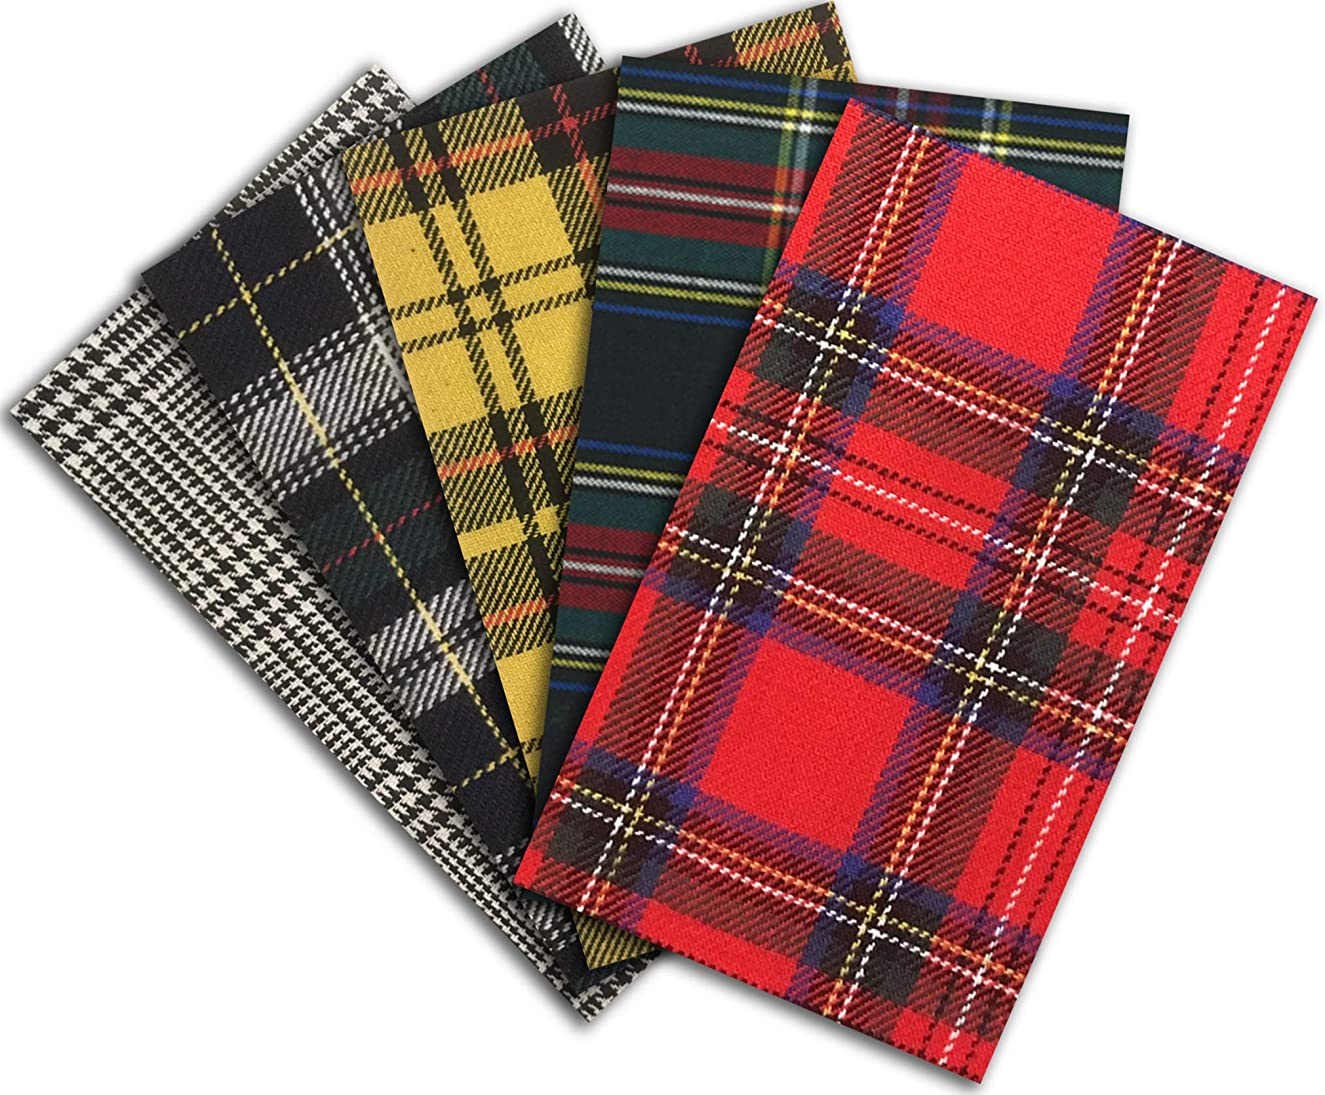 Iron-on Clothing Patches - PLAID